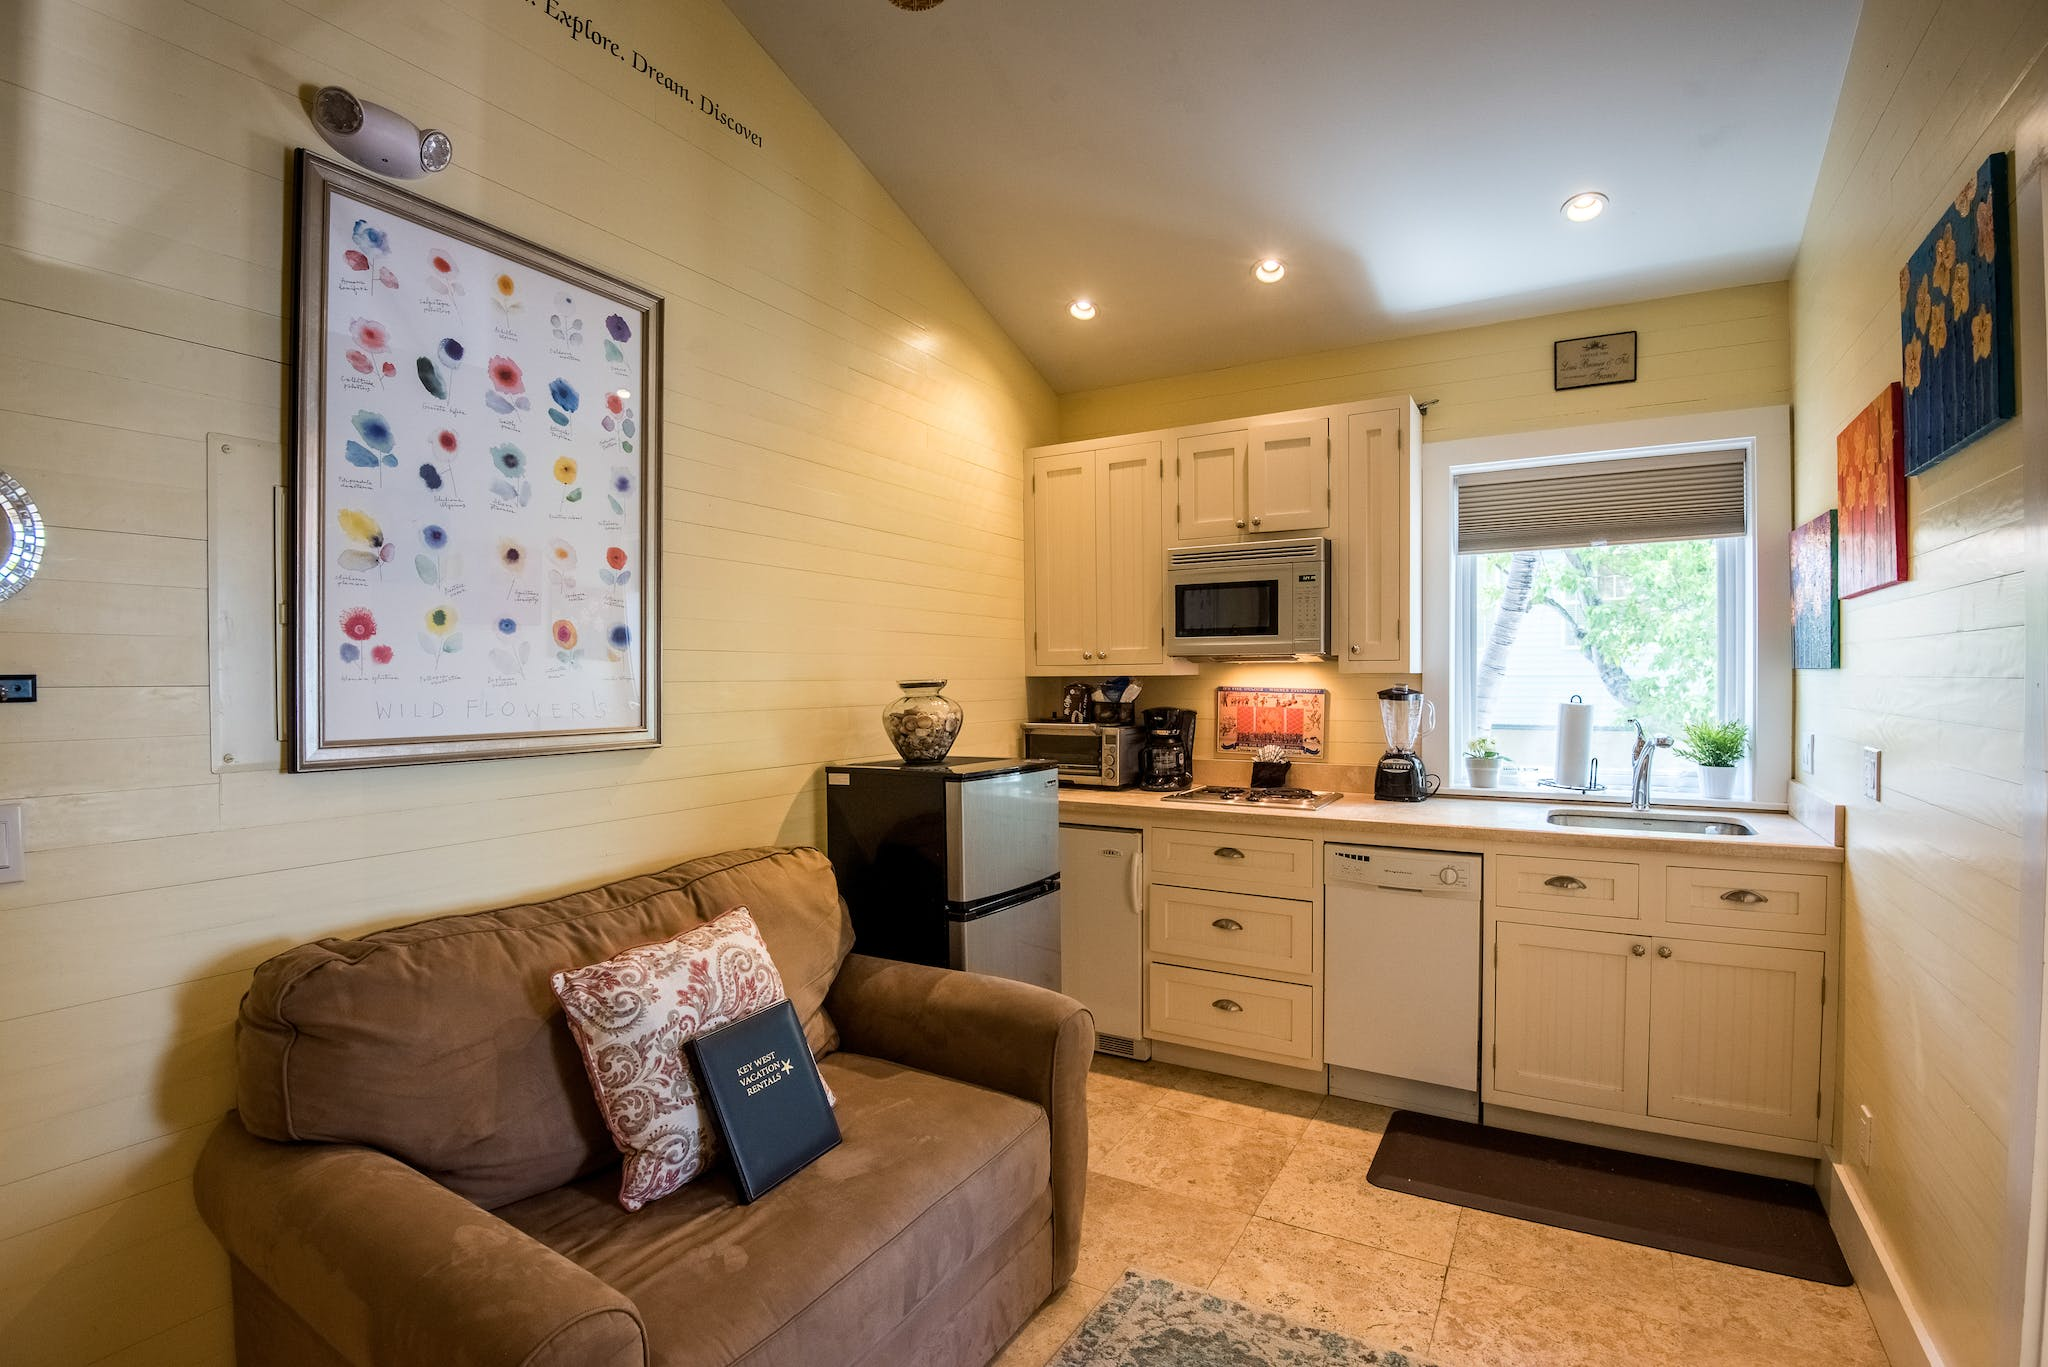 RENT Yellowfin Ledge On Duval - Nightly Rental | Key West Vacation ...